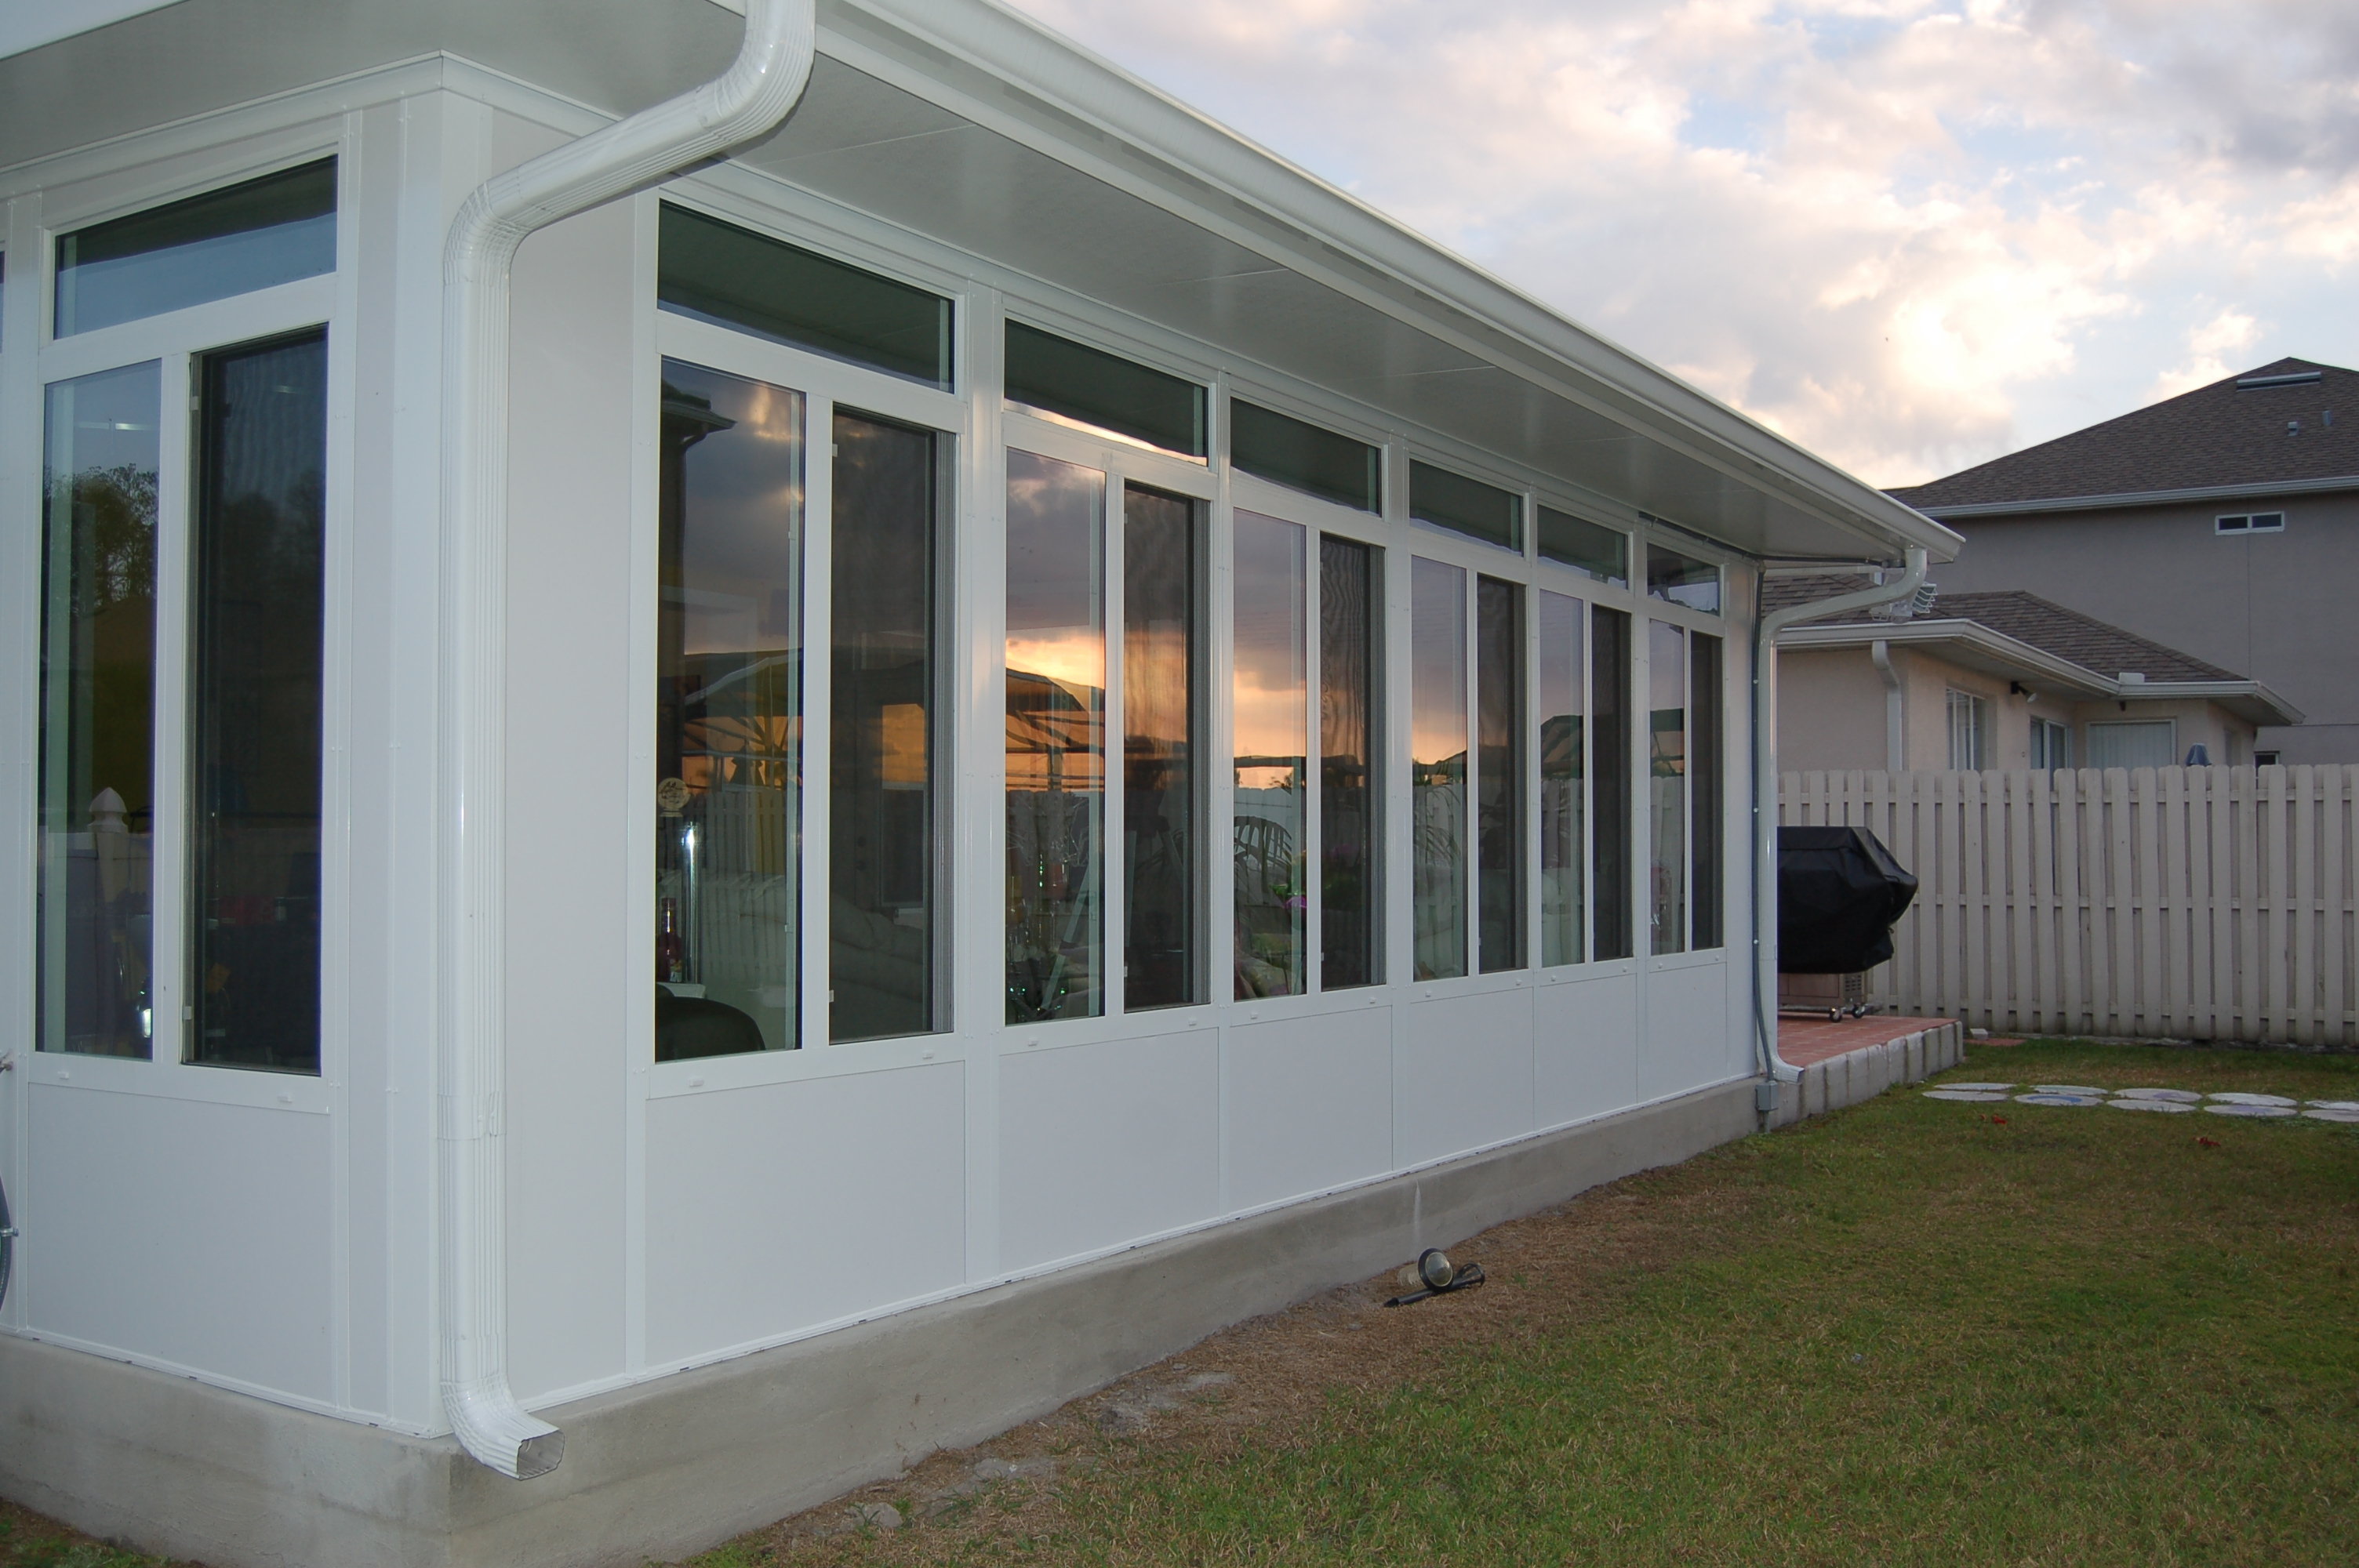 Screen Room or Sunroom: Which is a Better Fit for Your Home?